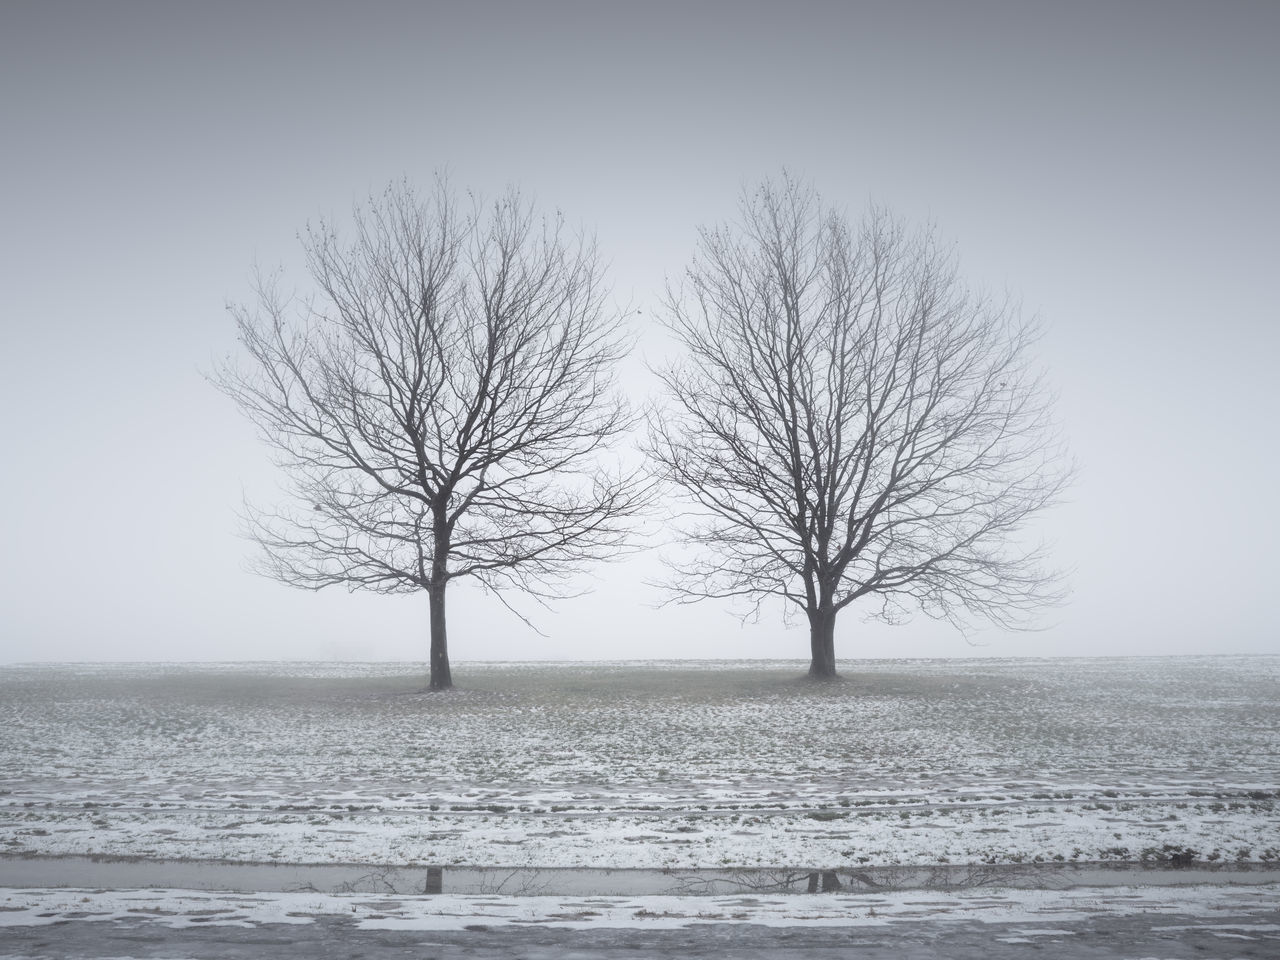 bare trees on field during winter Bare Tree Beauty In Nature Branch Clear Sky Cold Temperature Day Isolated Landscape Lone Majestic Muted Colors Nature No People Outdoors Philipp Dase Remote Scenics Sky Snow Solitude Tranquil Scene Tranquility Tree Tree Trunk Winter